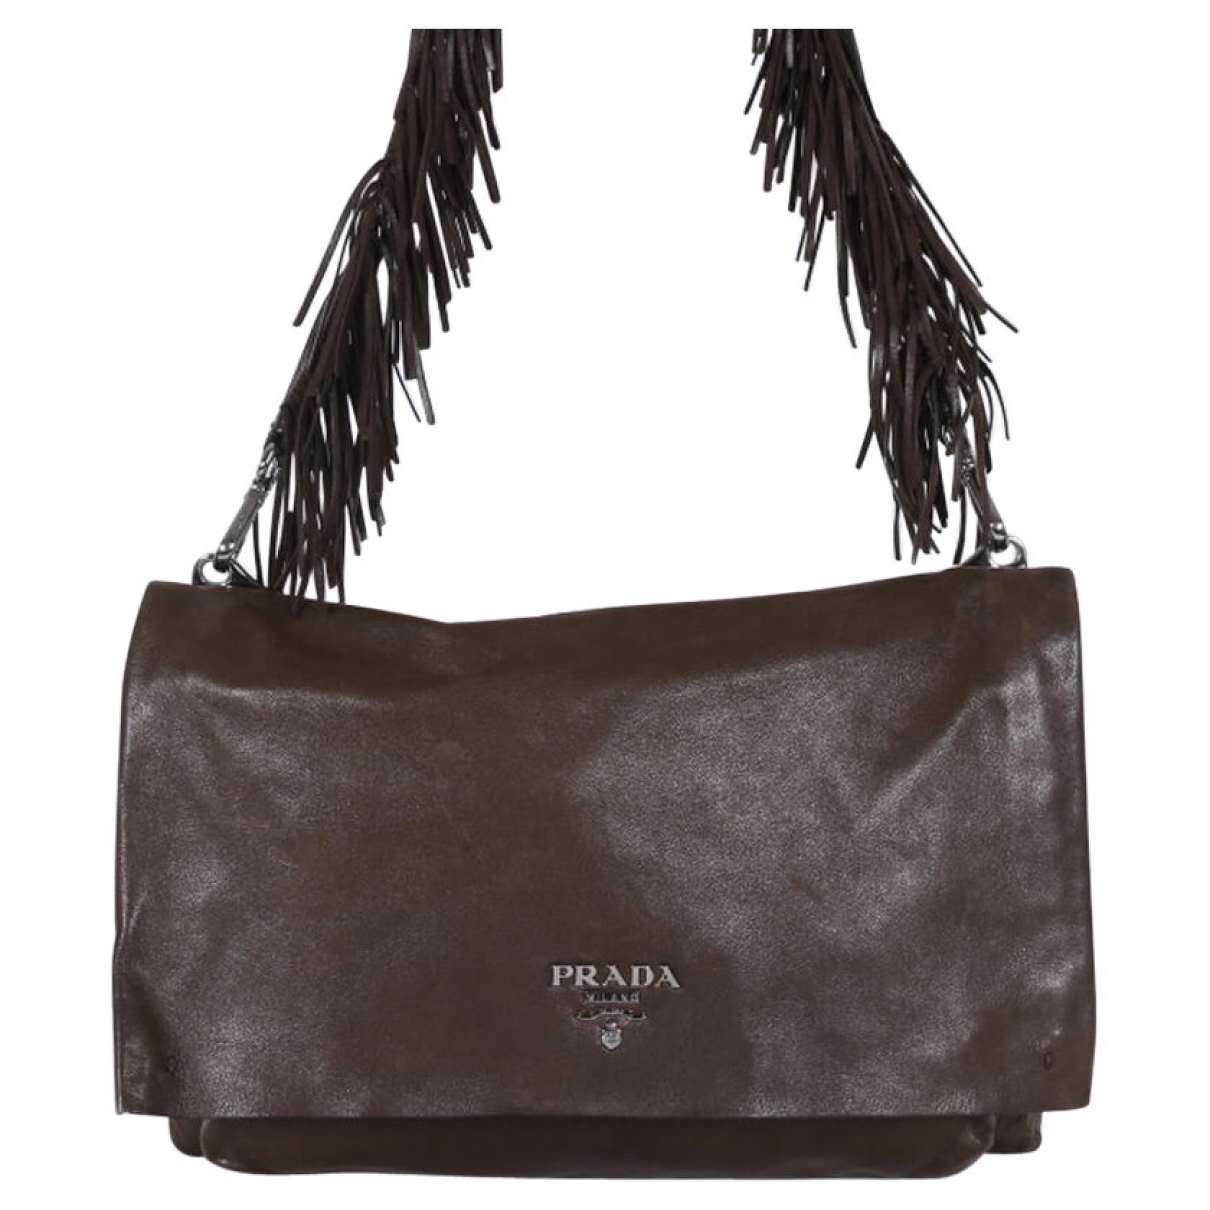 Prada \N Brown Leather handbag for Women \N